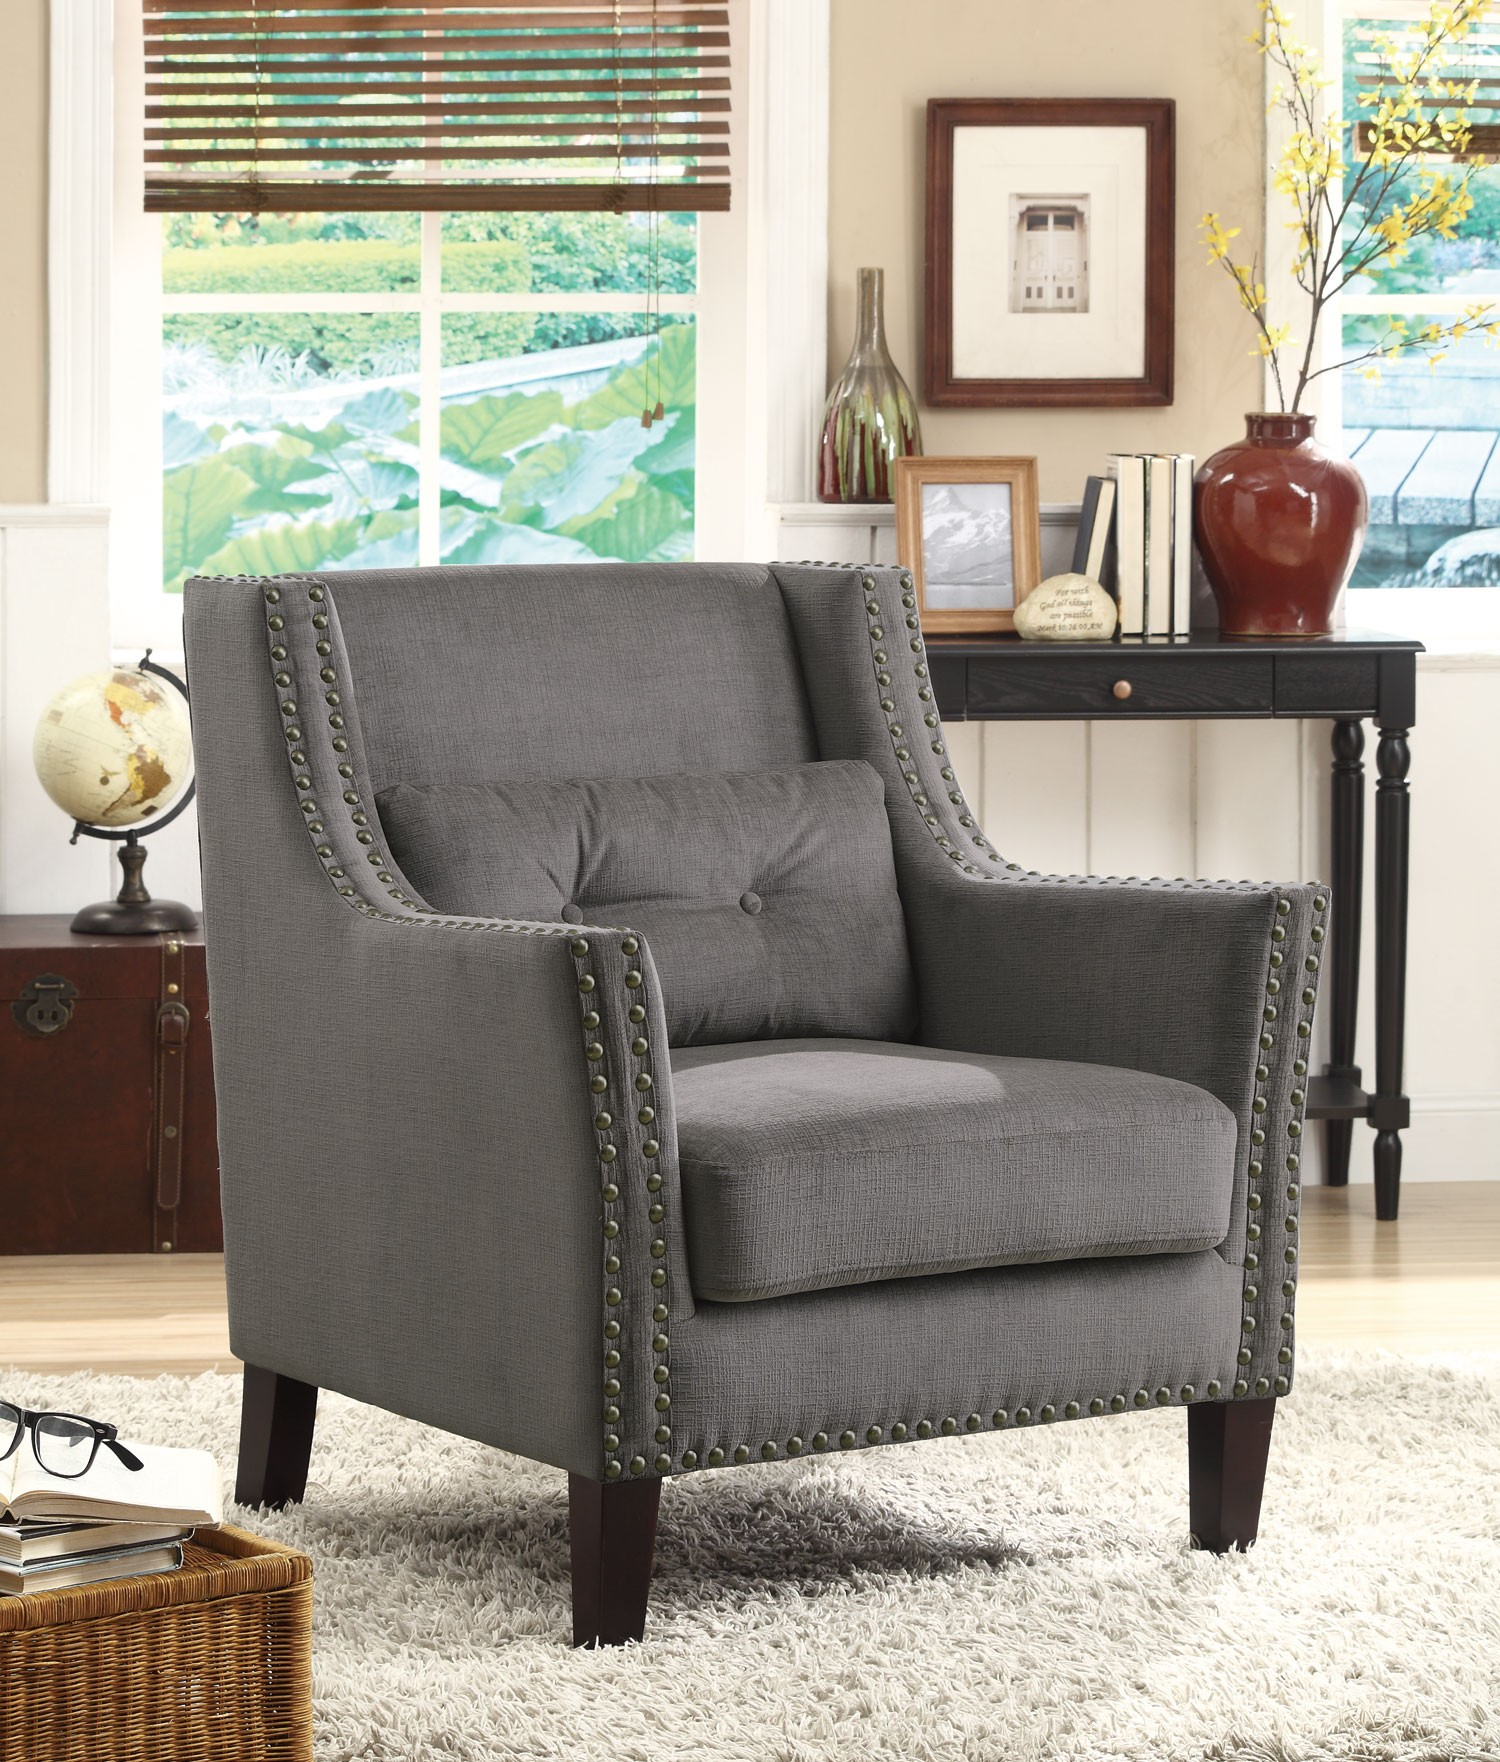 Grey Accent Chairs 902170 Grey Accent Chair From Coaster 902170 Coleman